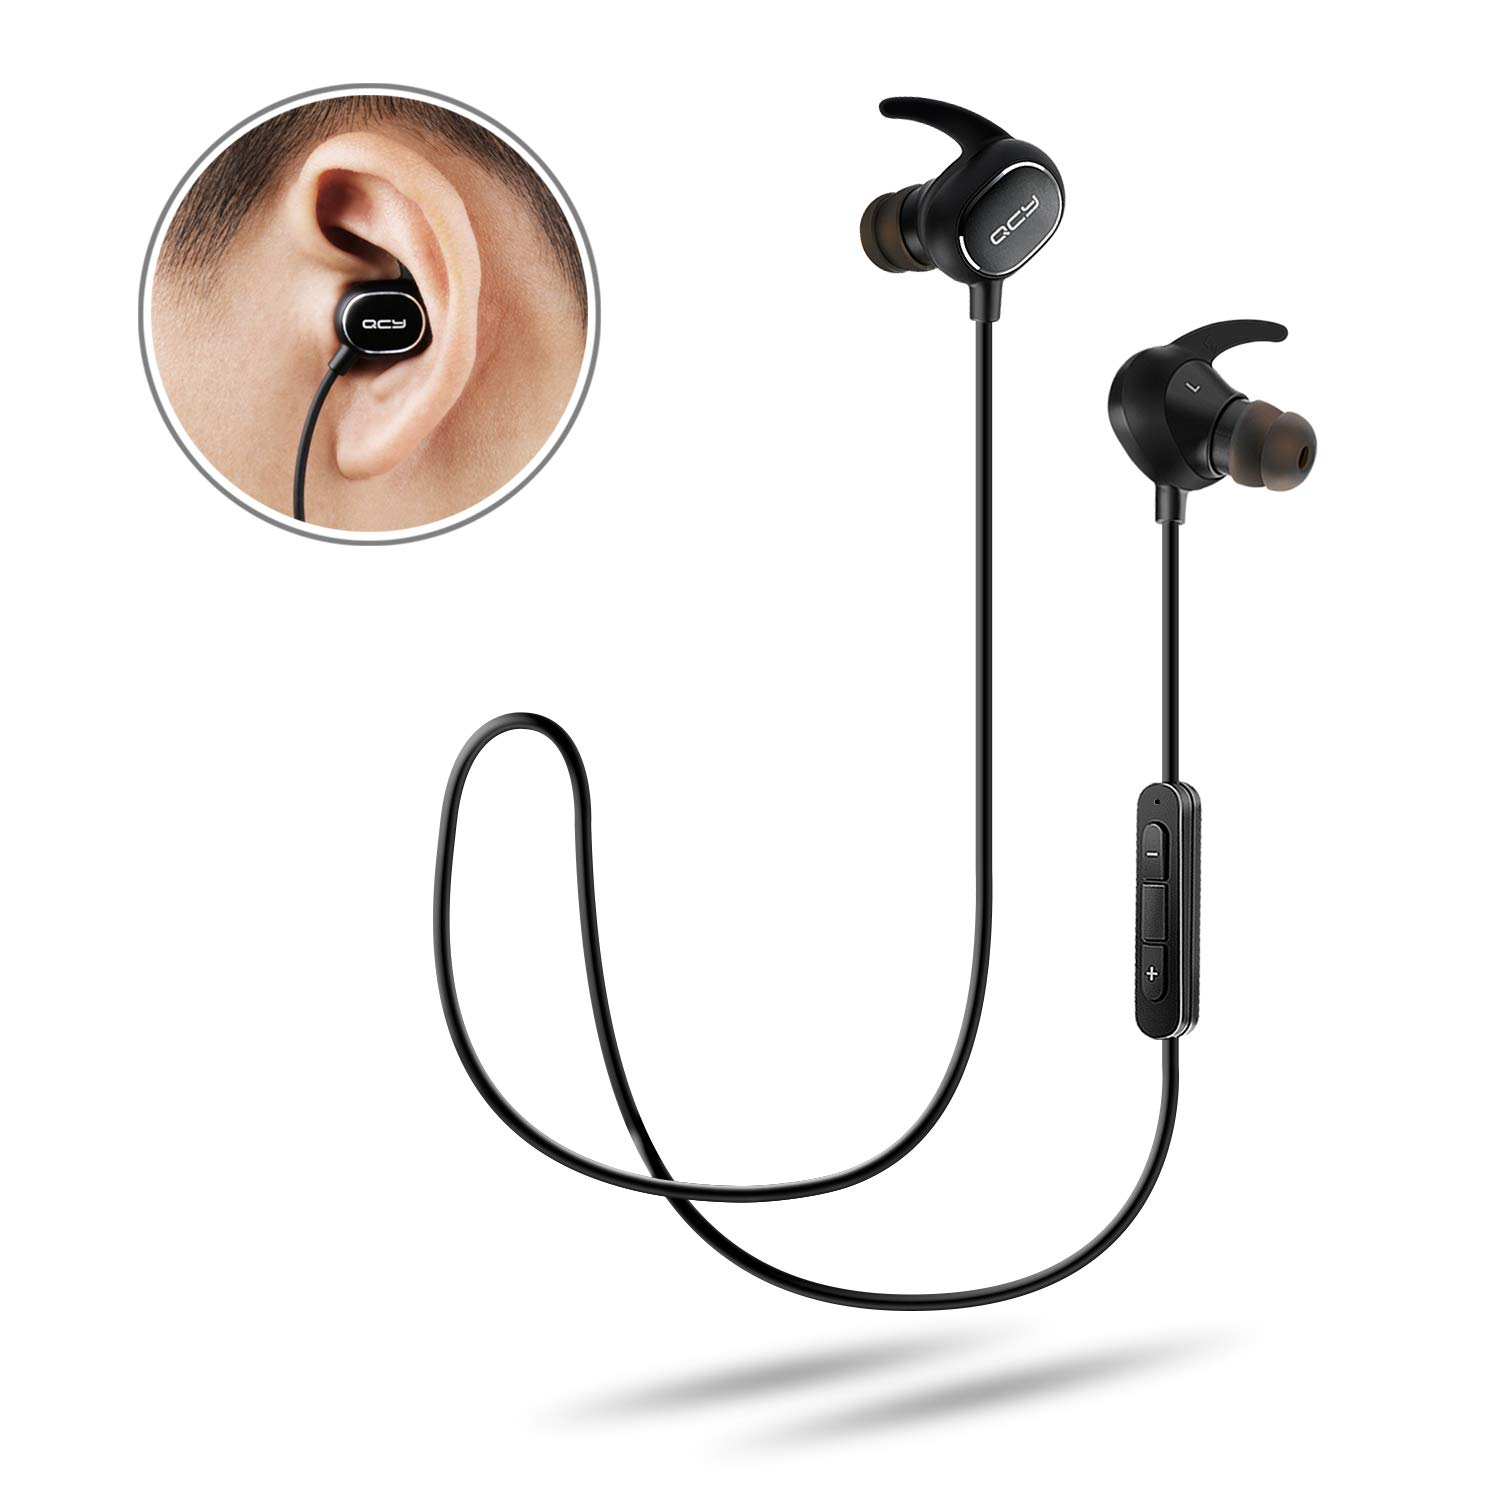 Amazon.com: Bluetooth Headphone Noise Cancelling Wireless Sports Headset - QY19 Waterproof Earbuds Earphones with Mic, Ultra Lightweight, Stereo Bluetooth ...